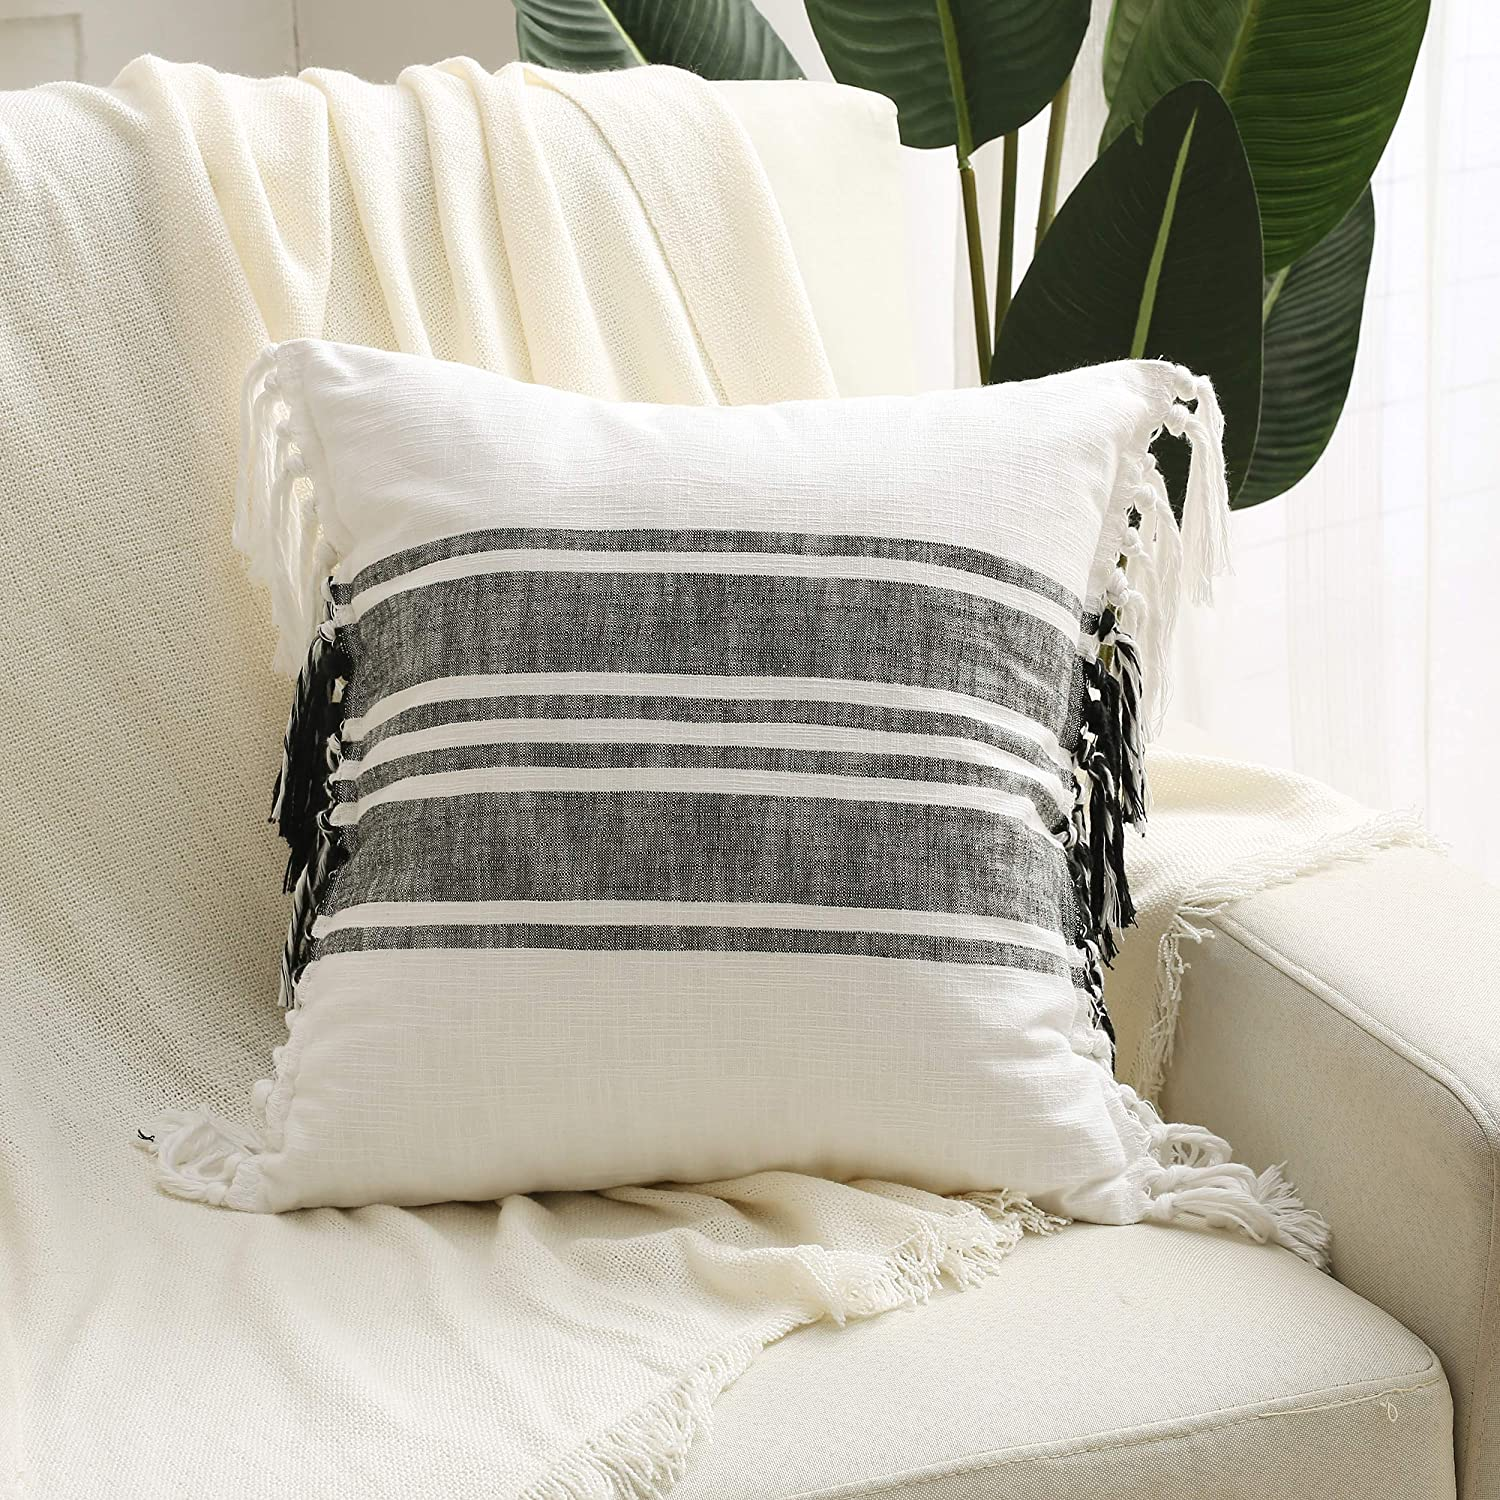 Double Sided Boho Black&White Hmong Throw Pillow Cover-Decorative Yarn-dyed Cotton Pillowcase with hand-knitted Tassels: for Home Décor, Living Room, Bedroom, Farmhouse, Sofa, Couch, Bed, and Car